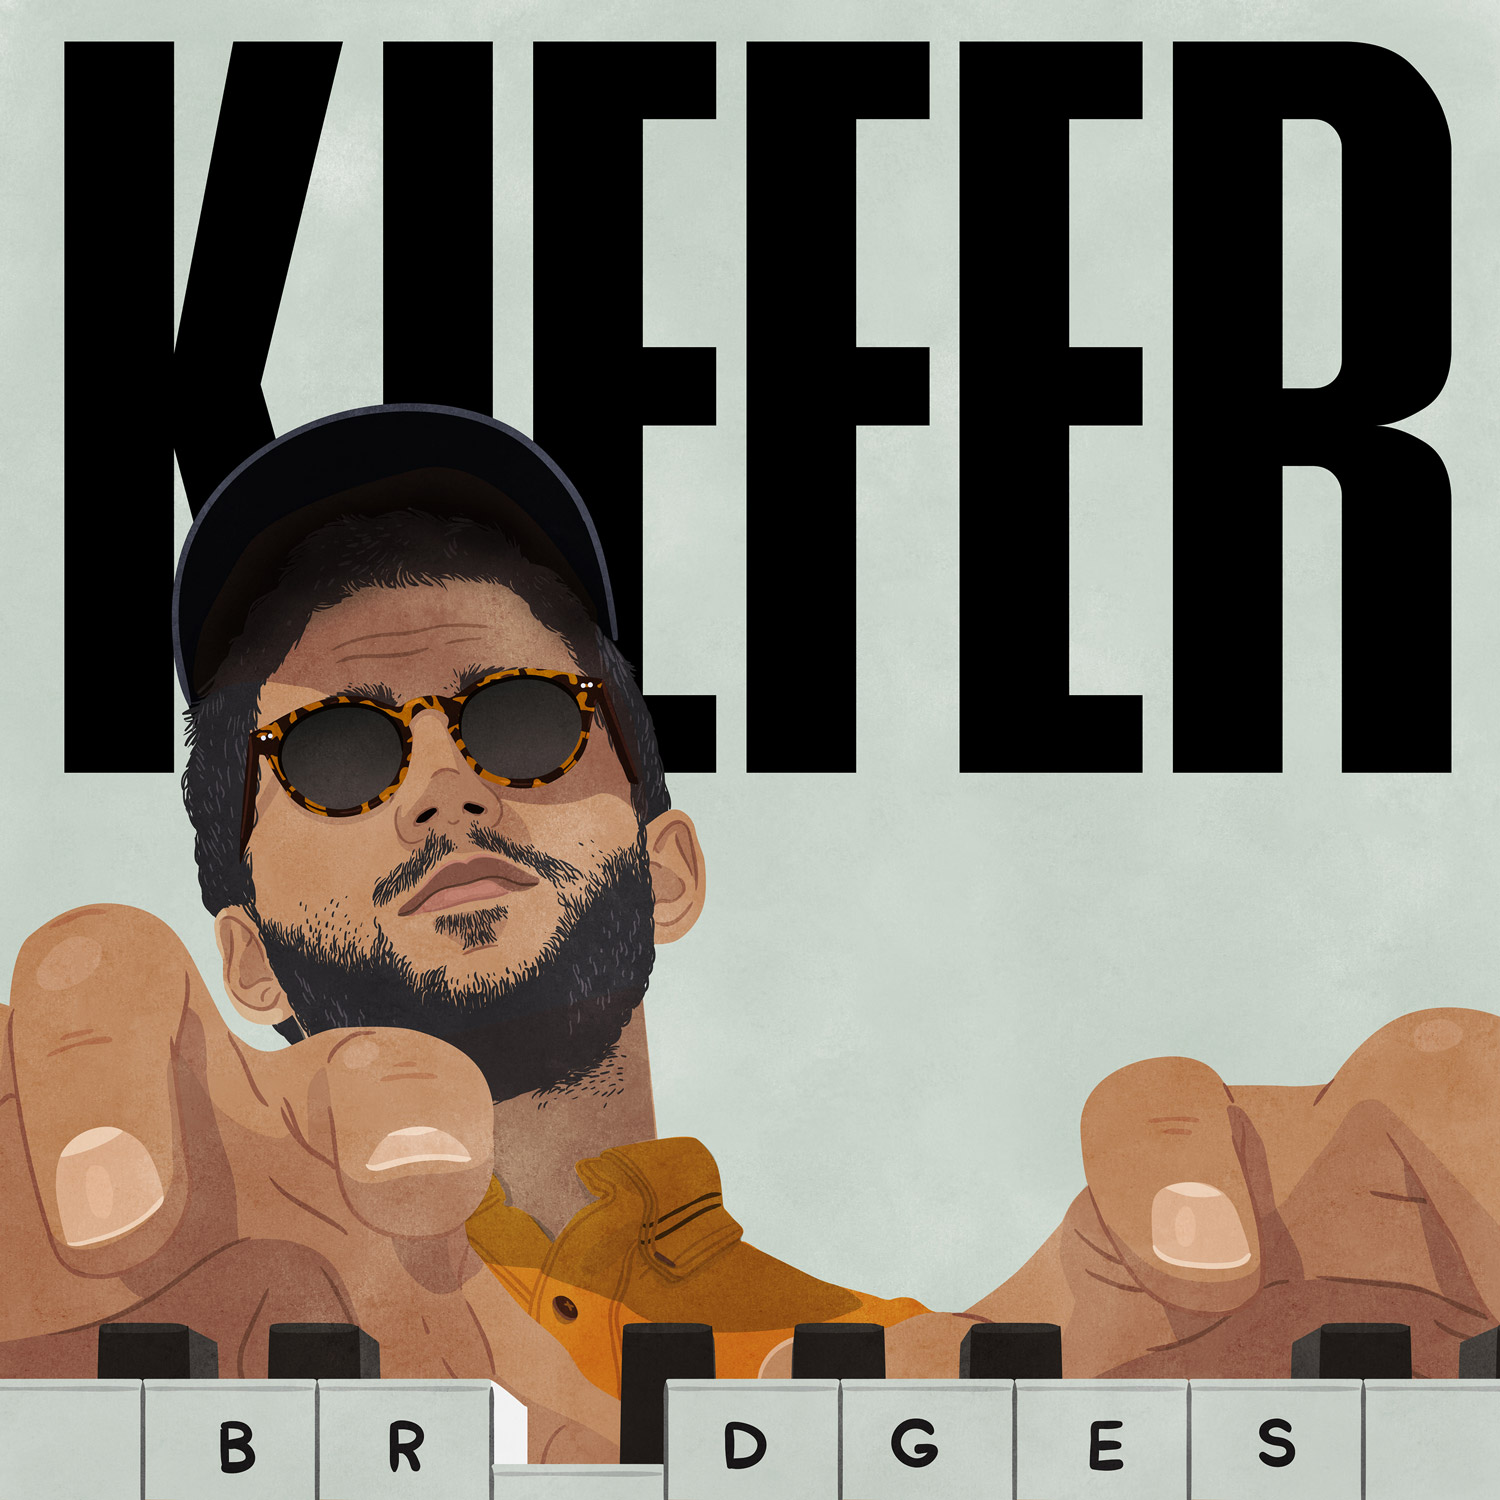 Kiefer-Bridges-Artwork-1500x1500.jpg